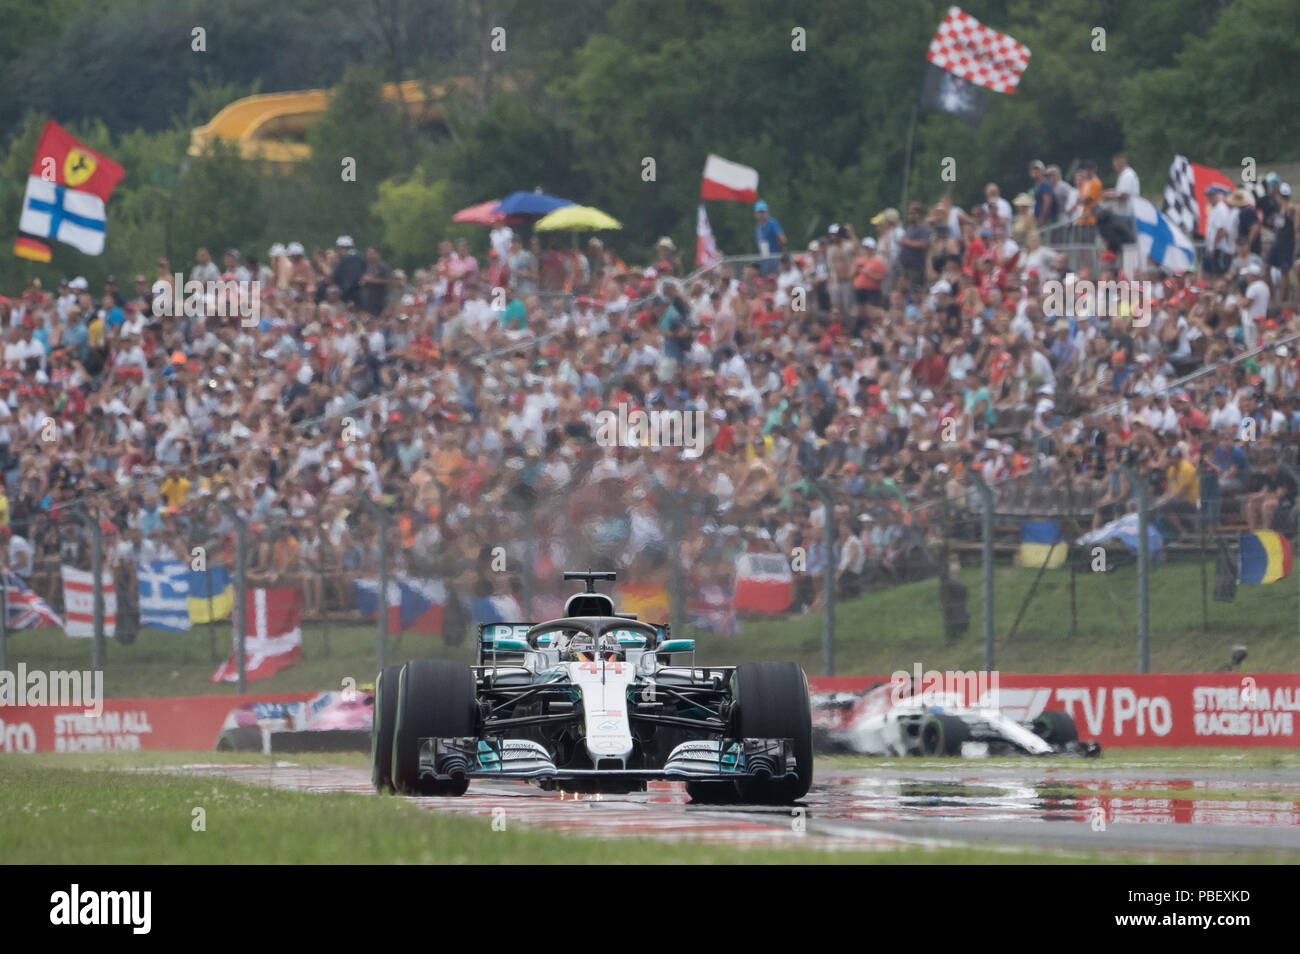 Mogyorod, Hungary  28th July, 2018  Mercedes AMG Petronas F1